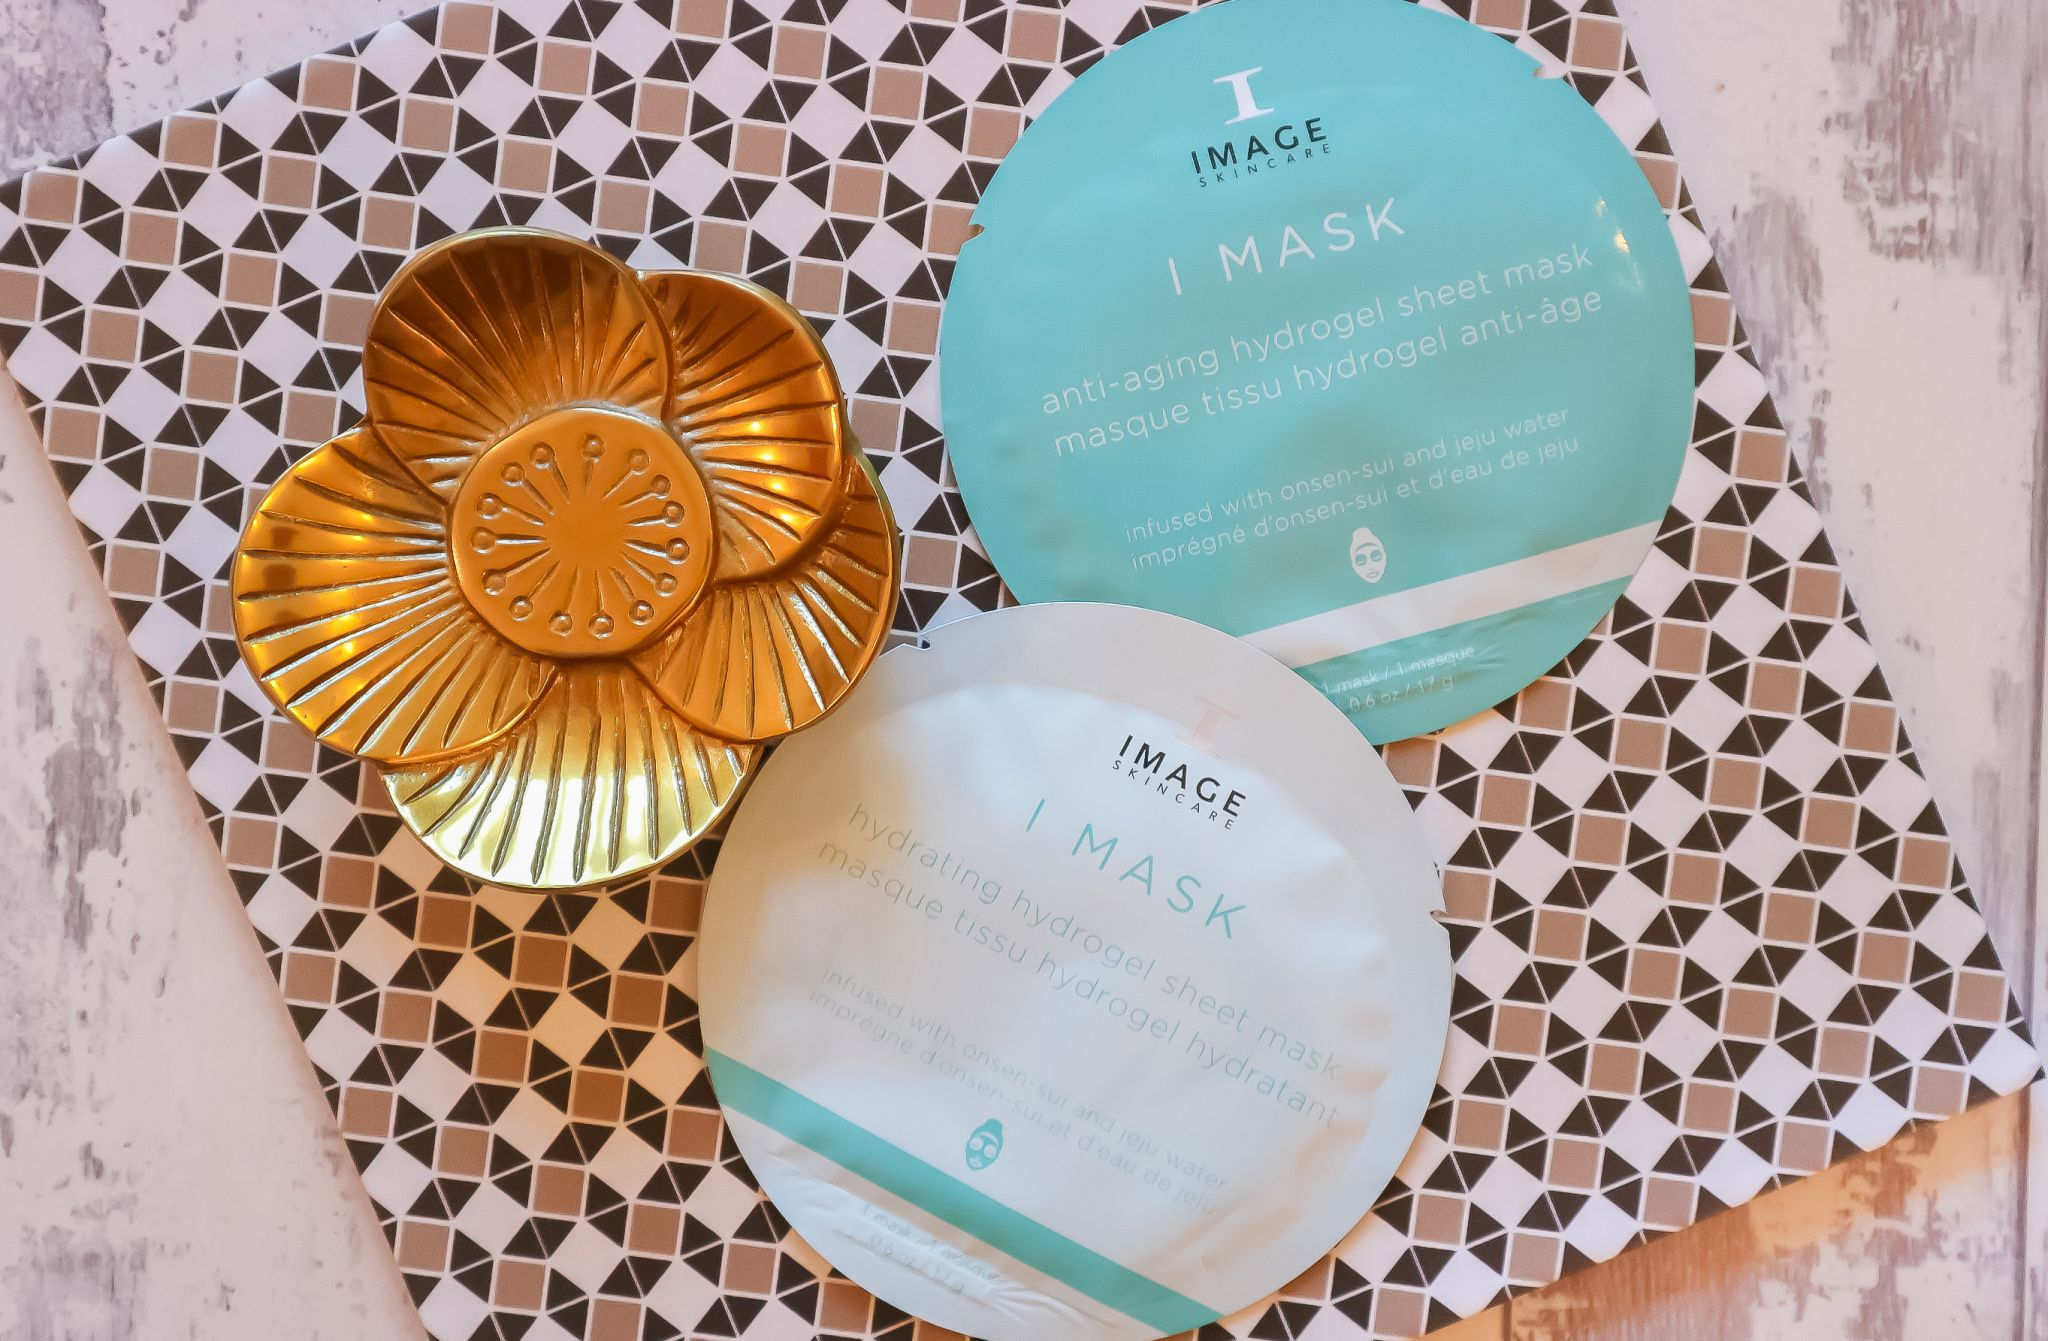 Image Skincare Sheet Masks